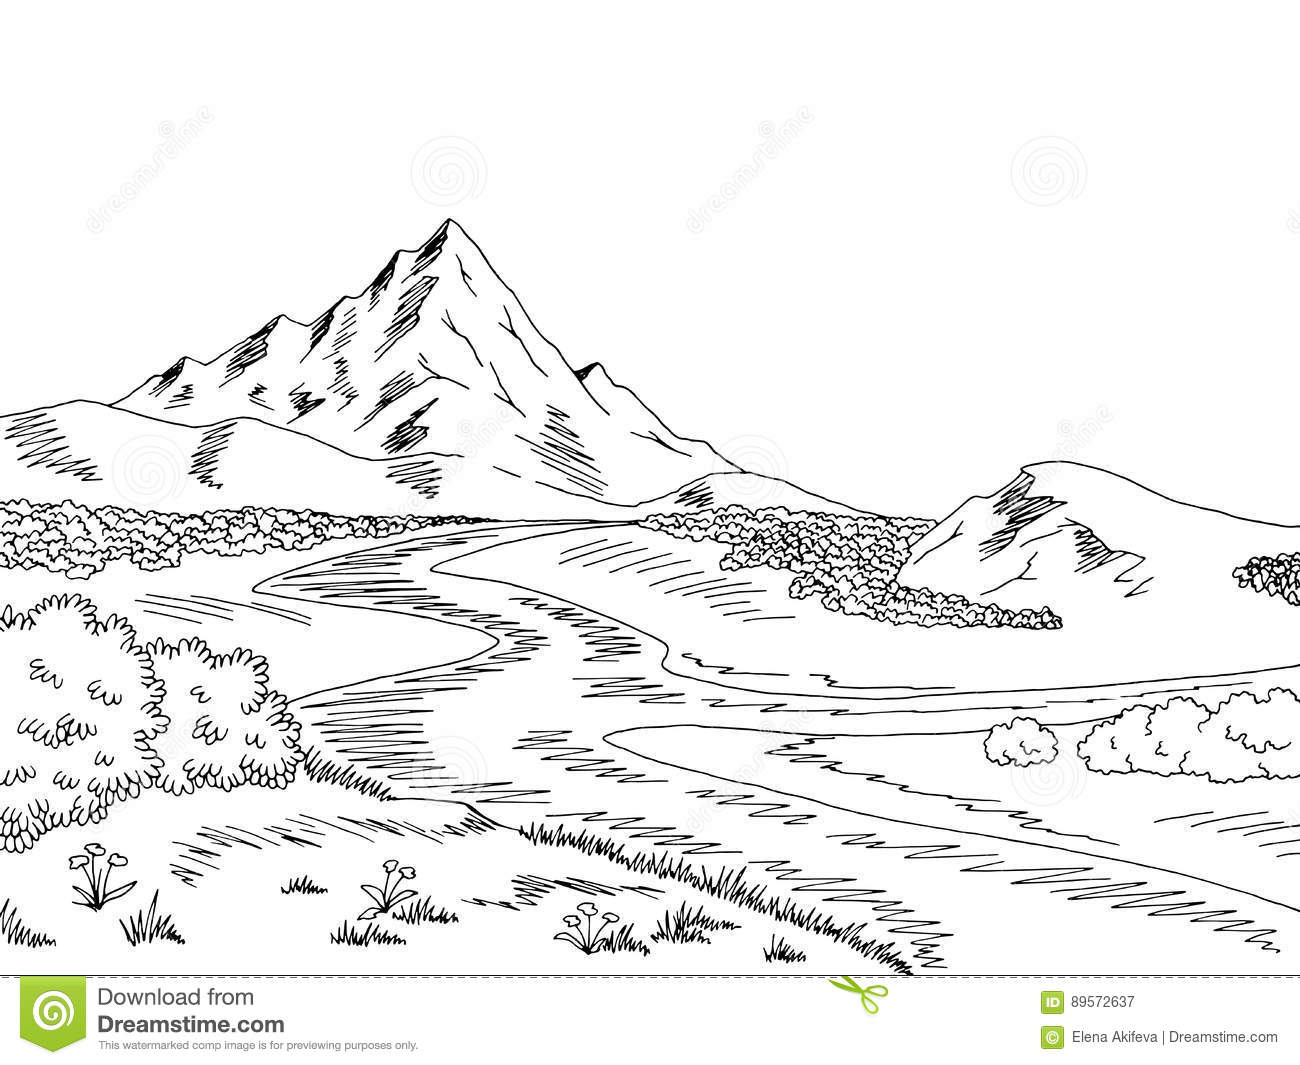 outline images of mountain landscapes